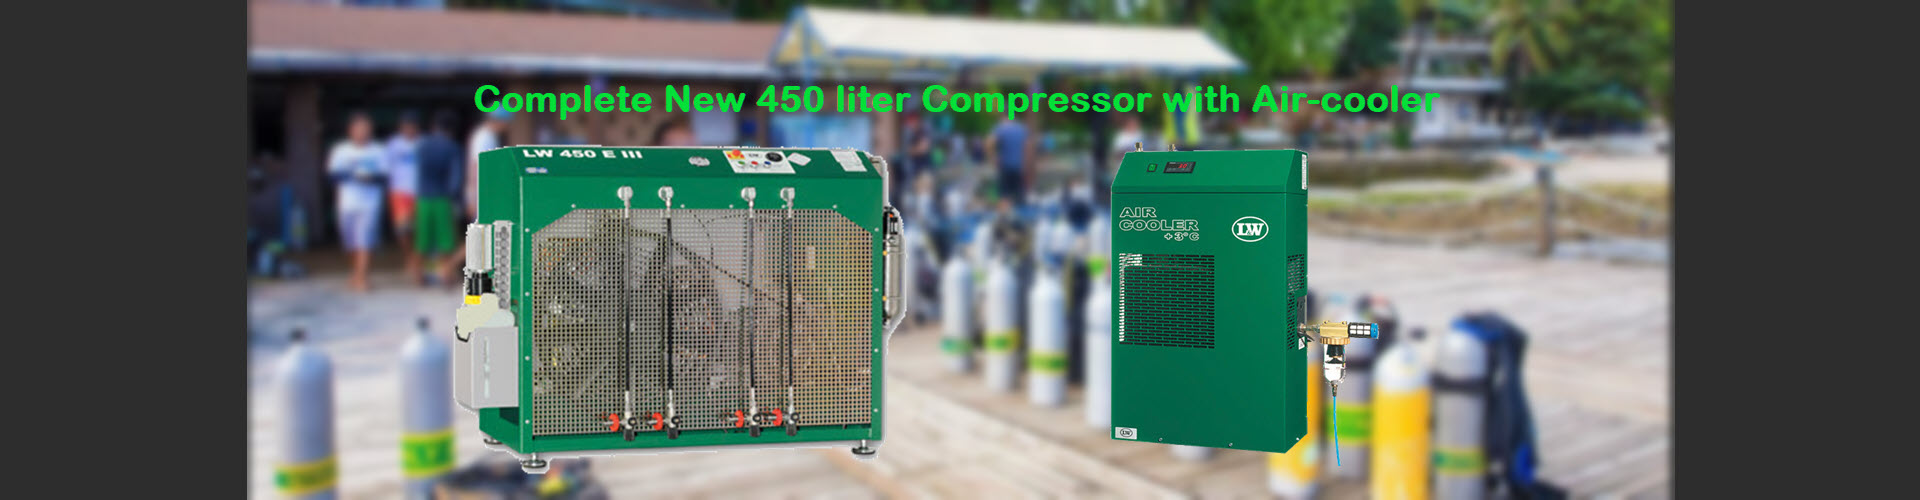 LW450E III compressor with Air-cooler